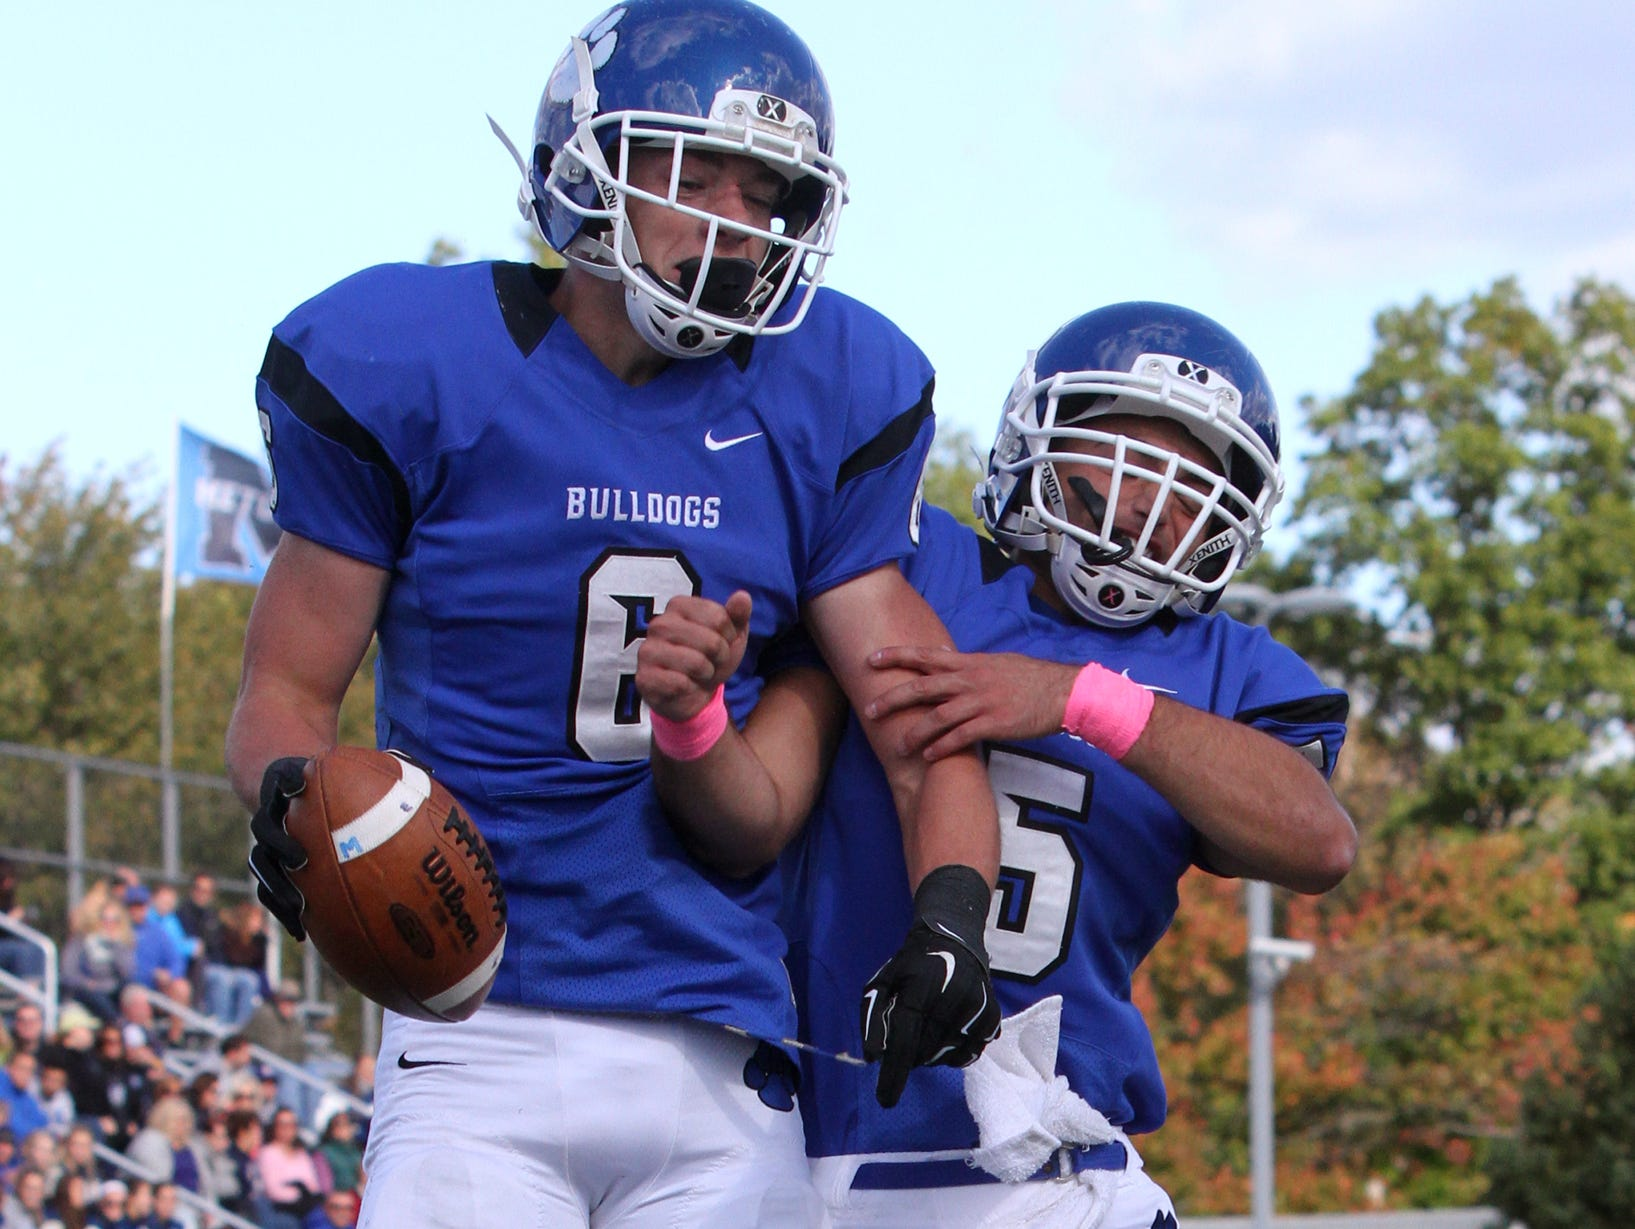 The Blue Jays of Middlesex High School take on the Bulldogs of Metuchen High School in a varsity football game on Saturday October 17,2015. Metuchen's # 6 (left)- Trevor Firgau celebrates his first half touchdown with team mate # 4 (right)- Jake Lebovits.